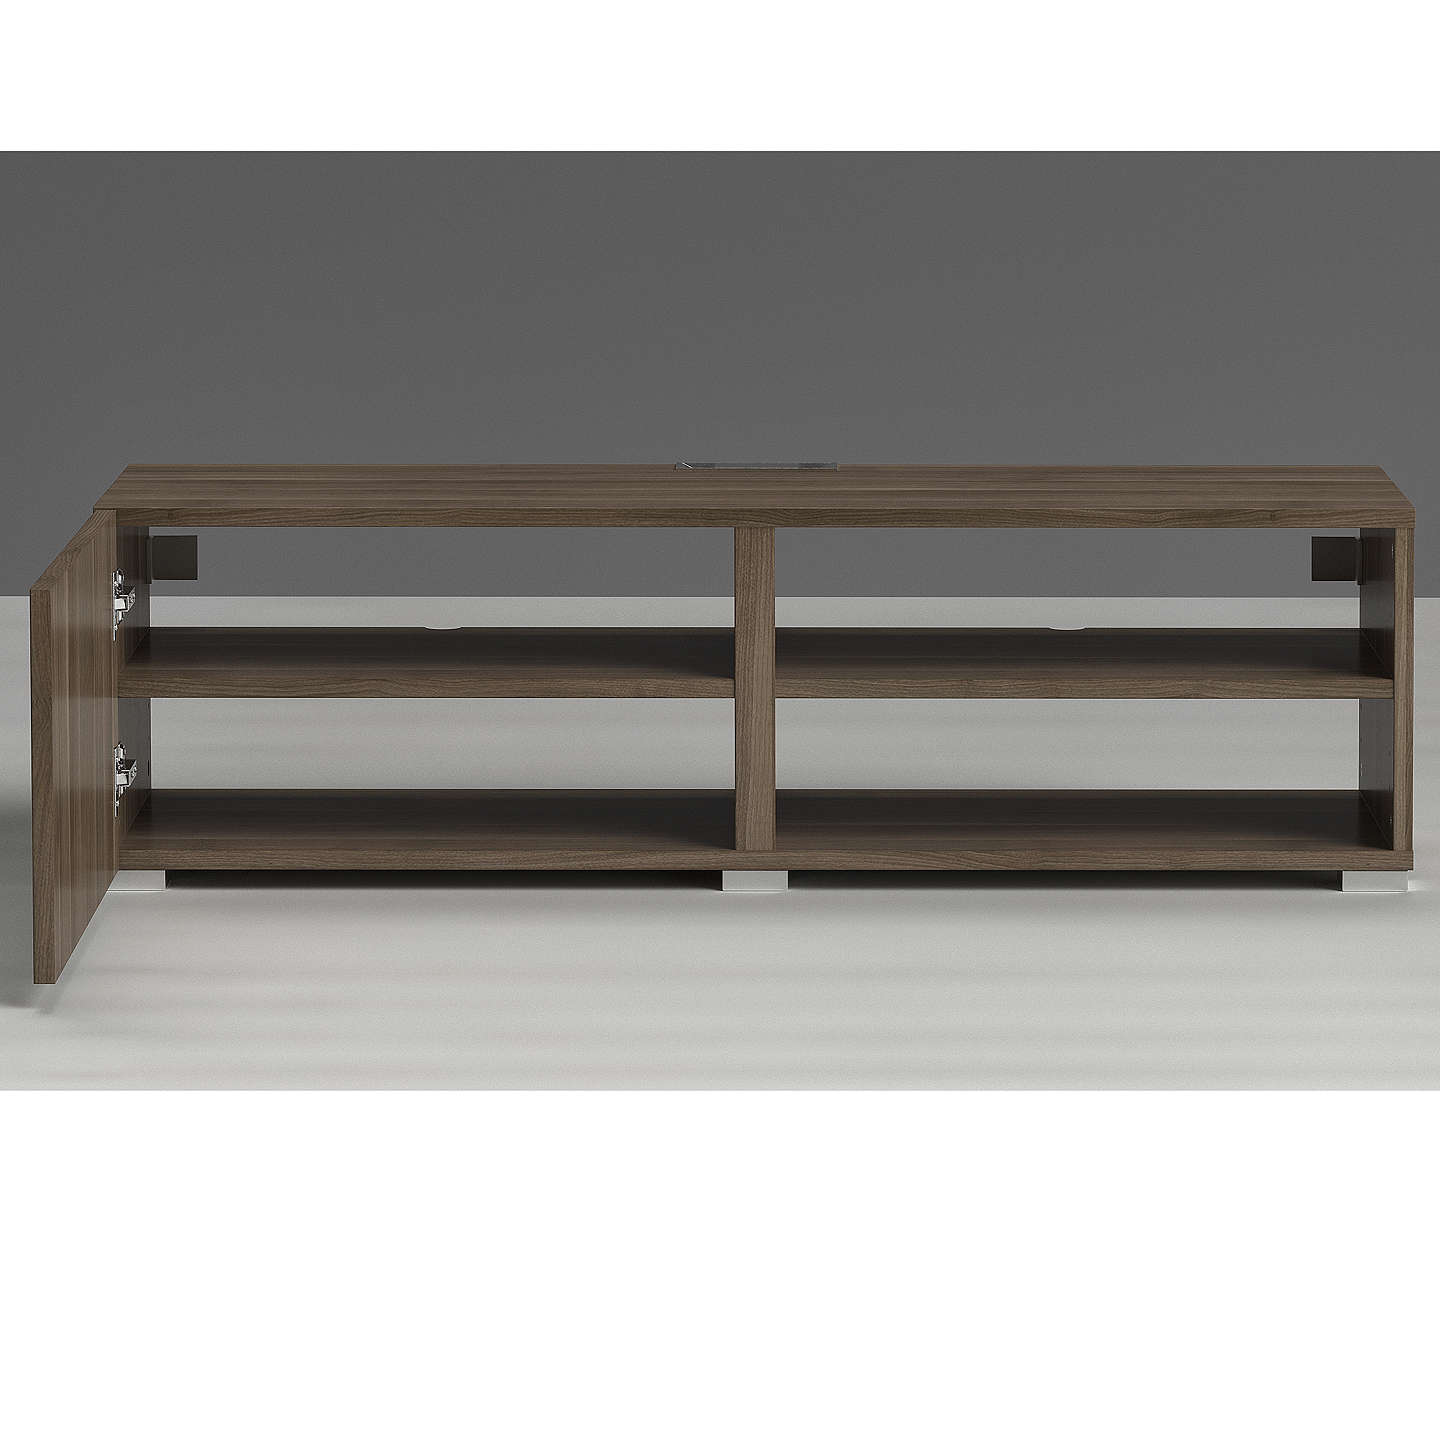 modern design with wood bed storage cabinet bench black outdoor walnut upholstered long dining console media gold